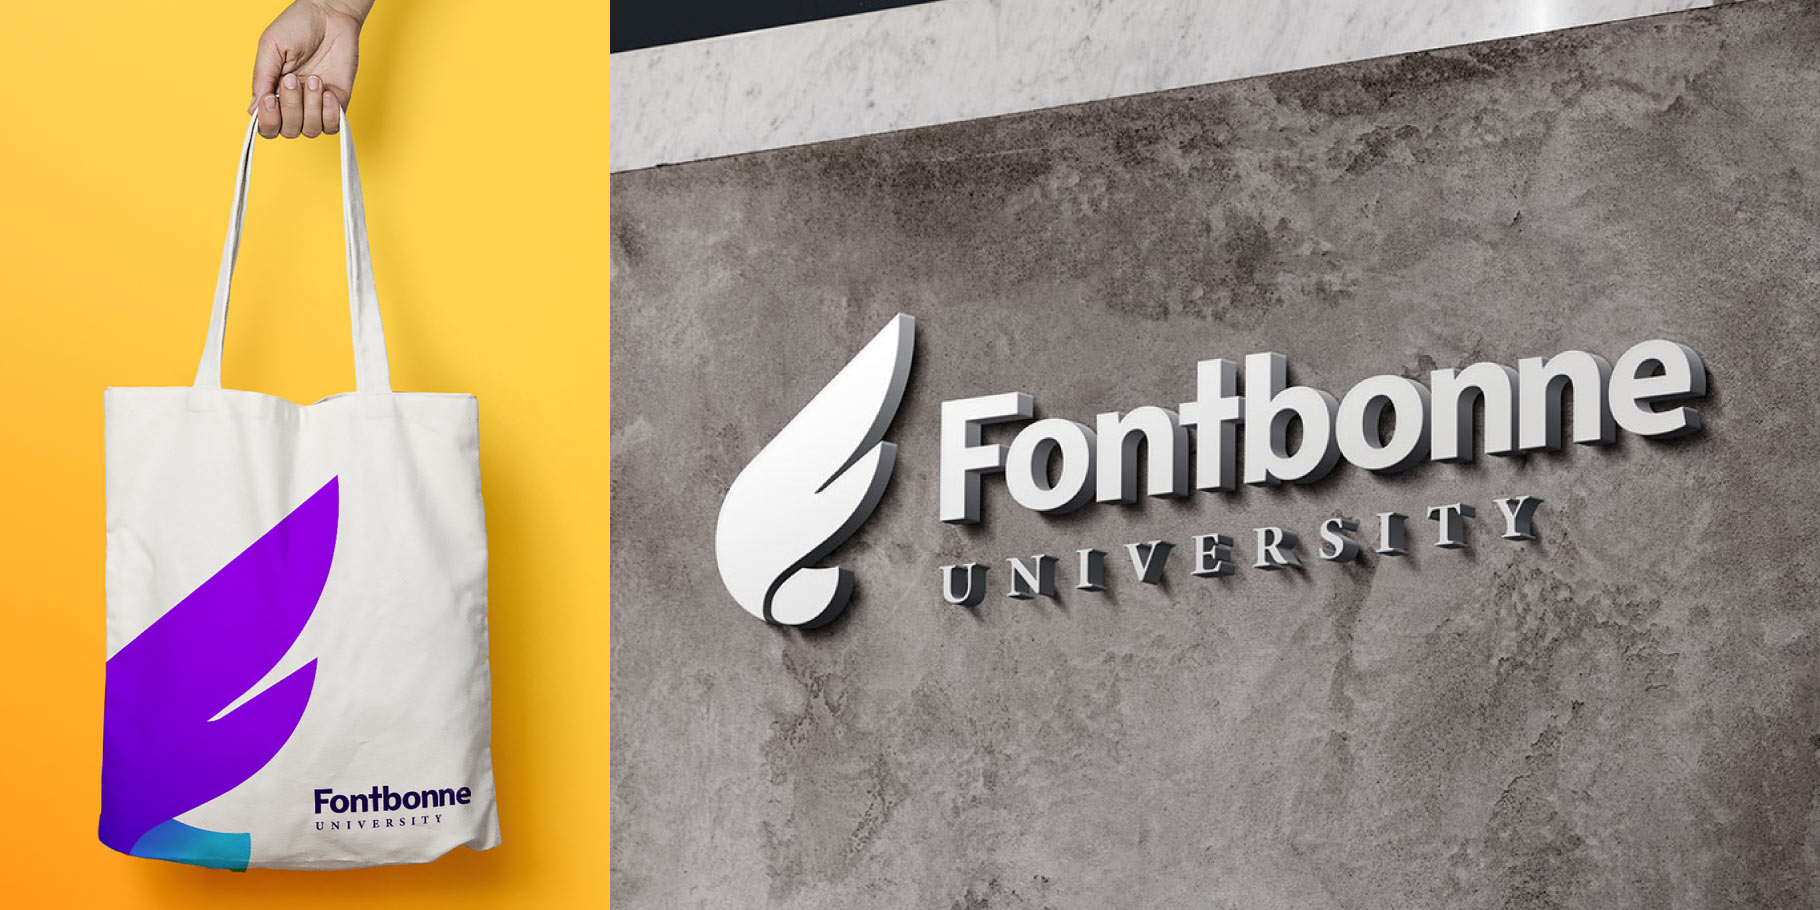 Fontbonne University logo on a canvas bag and a stone wall